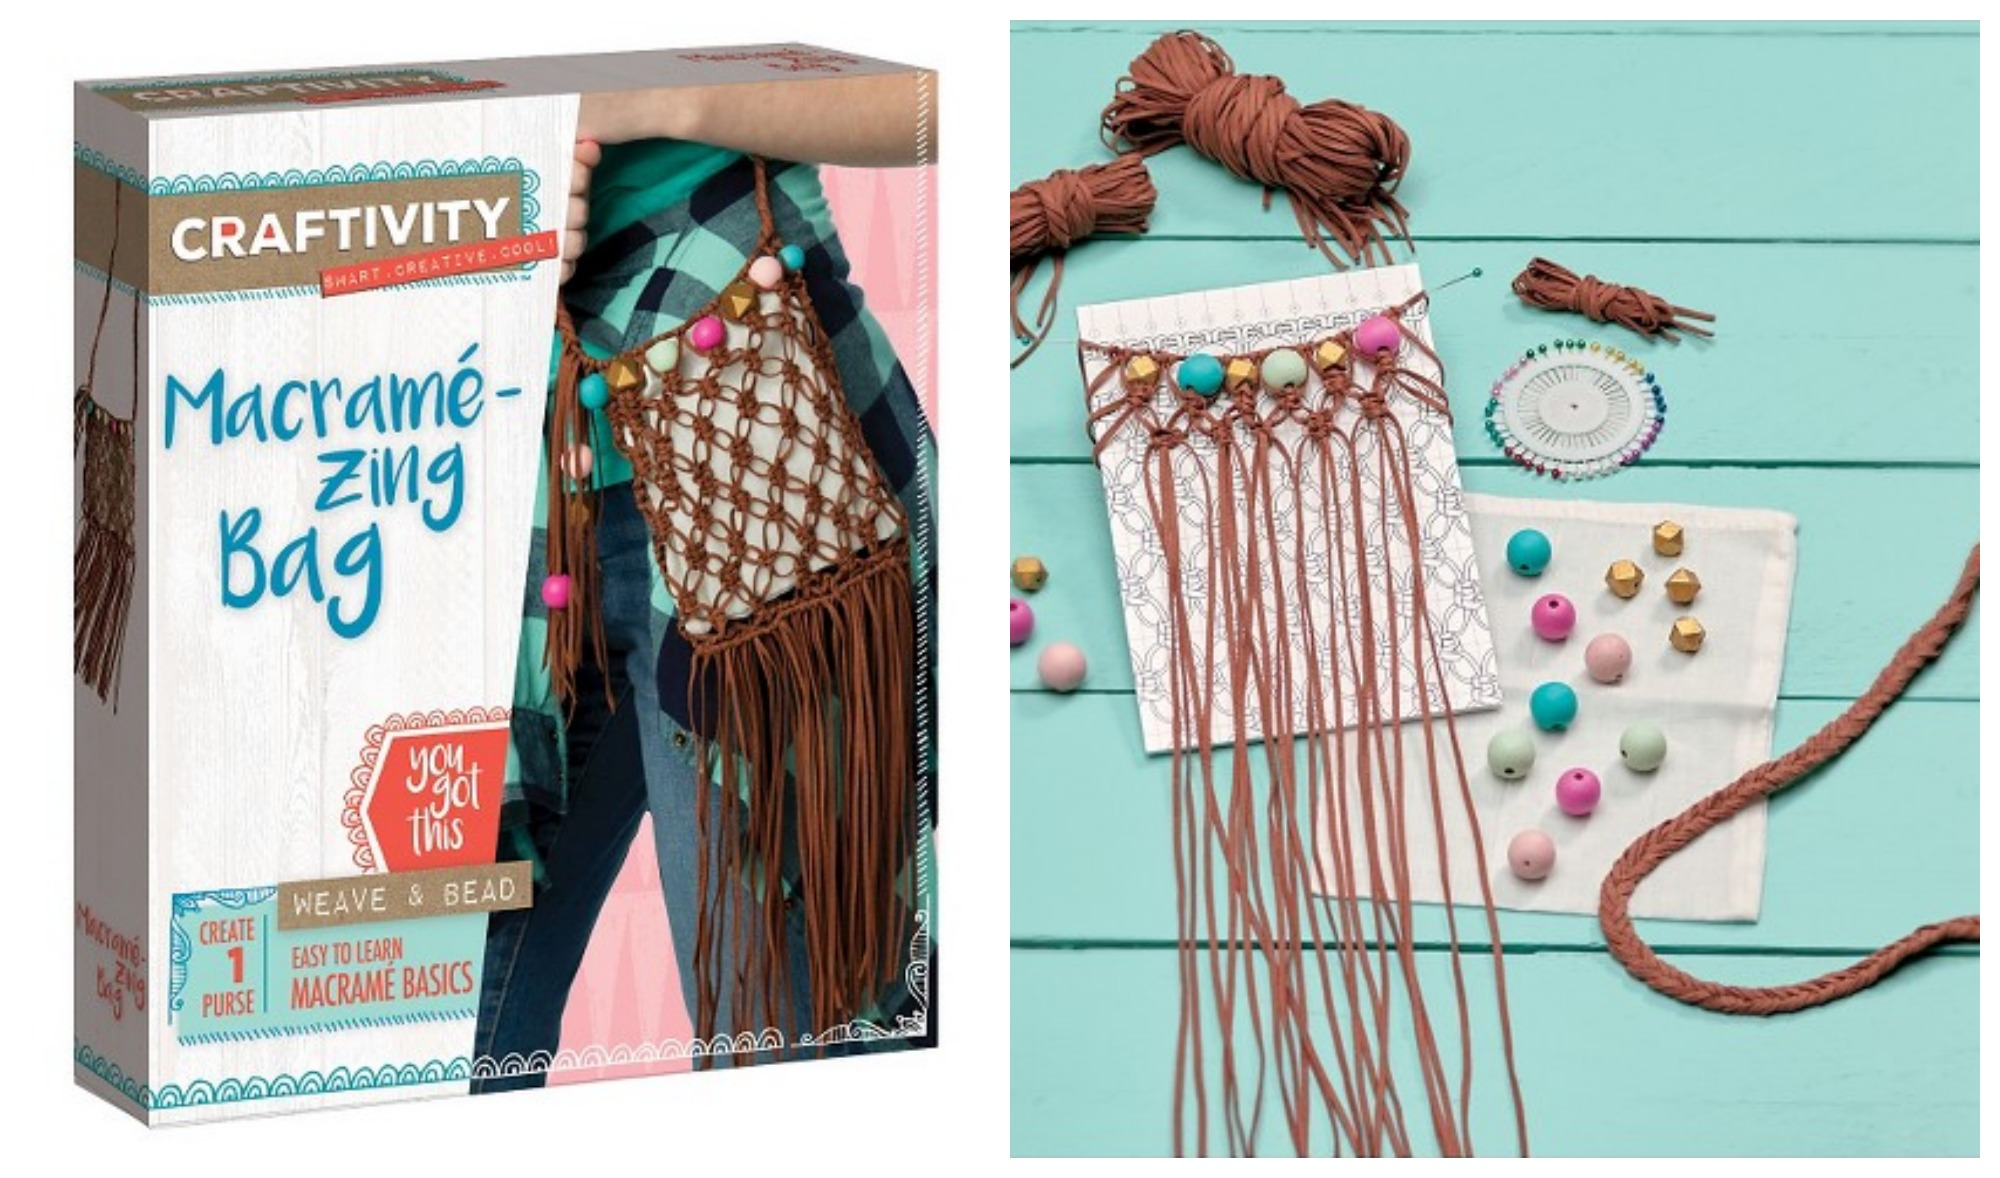 Craftivity macrame zing bag craft kit only 848 reg 17 right now at target you can score this craftivity macrame zing bag craft kit for only 848 this kit is a great easter gift idea negle Choice Image